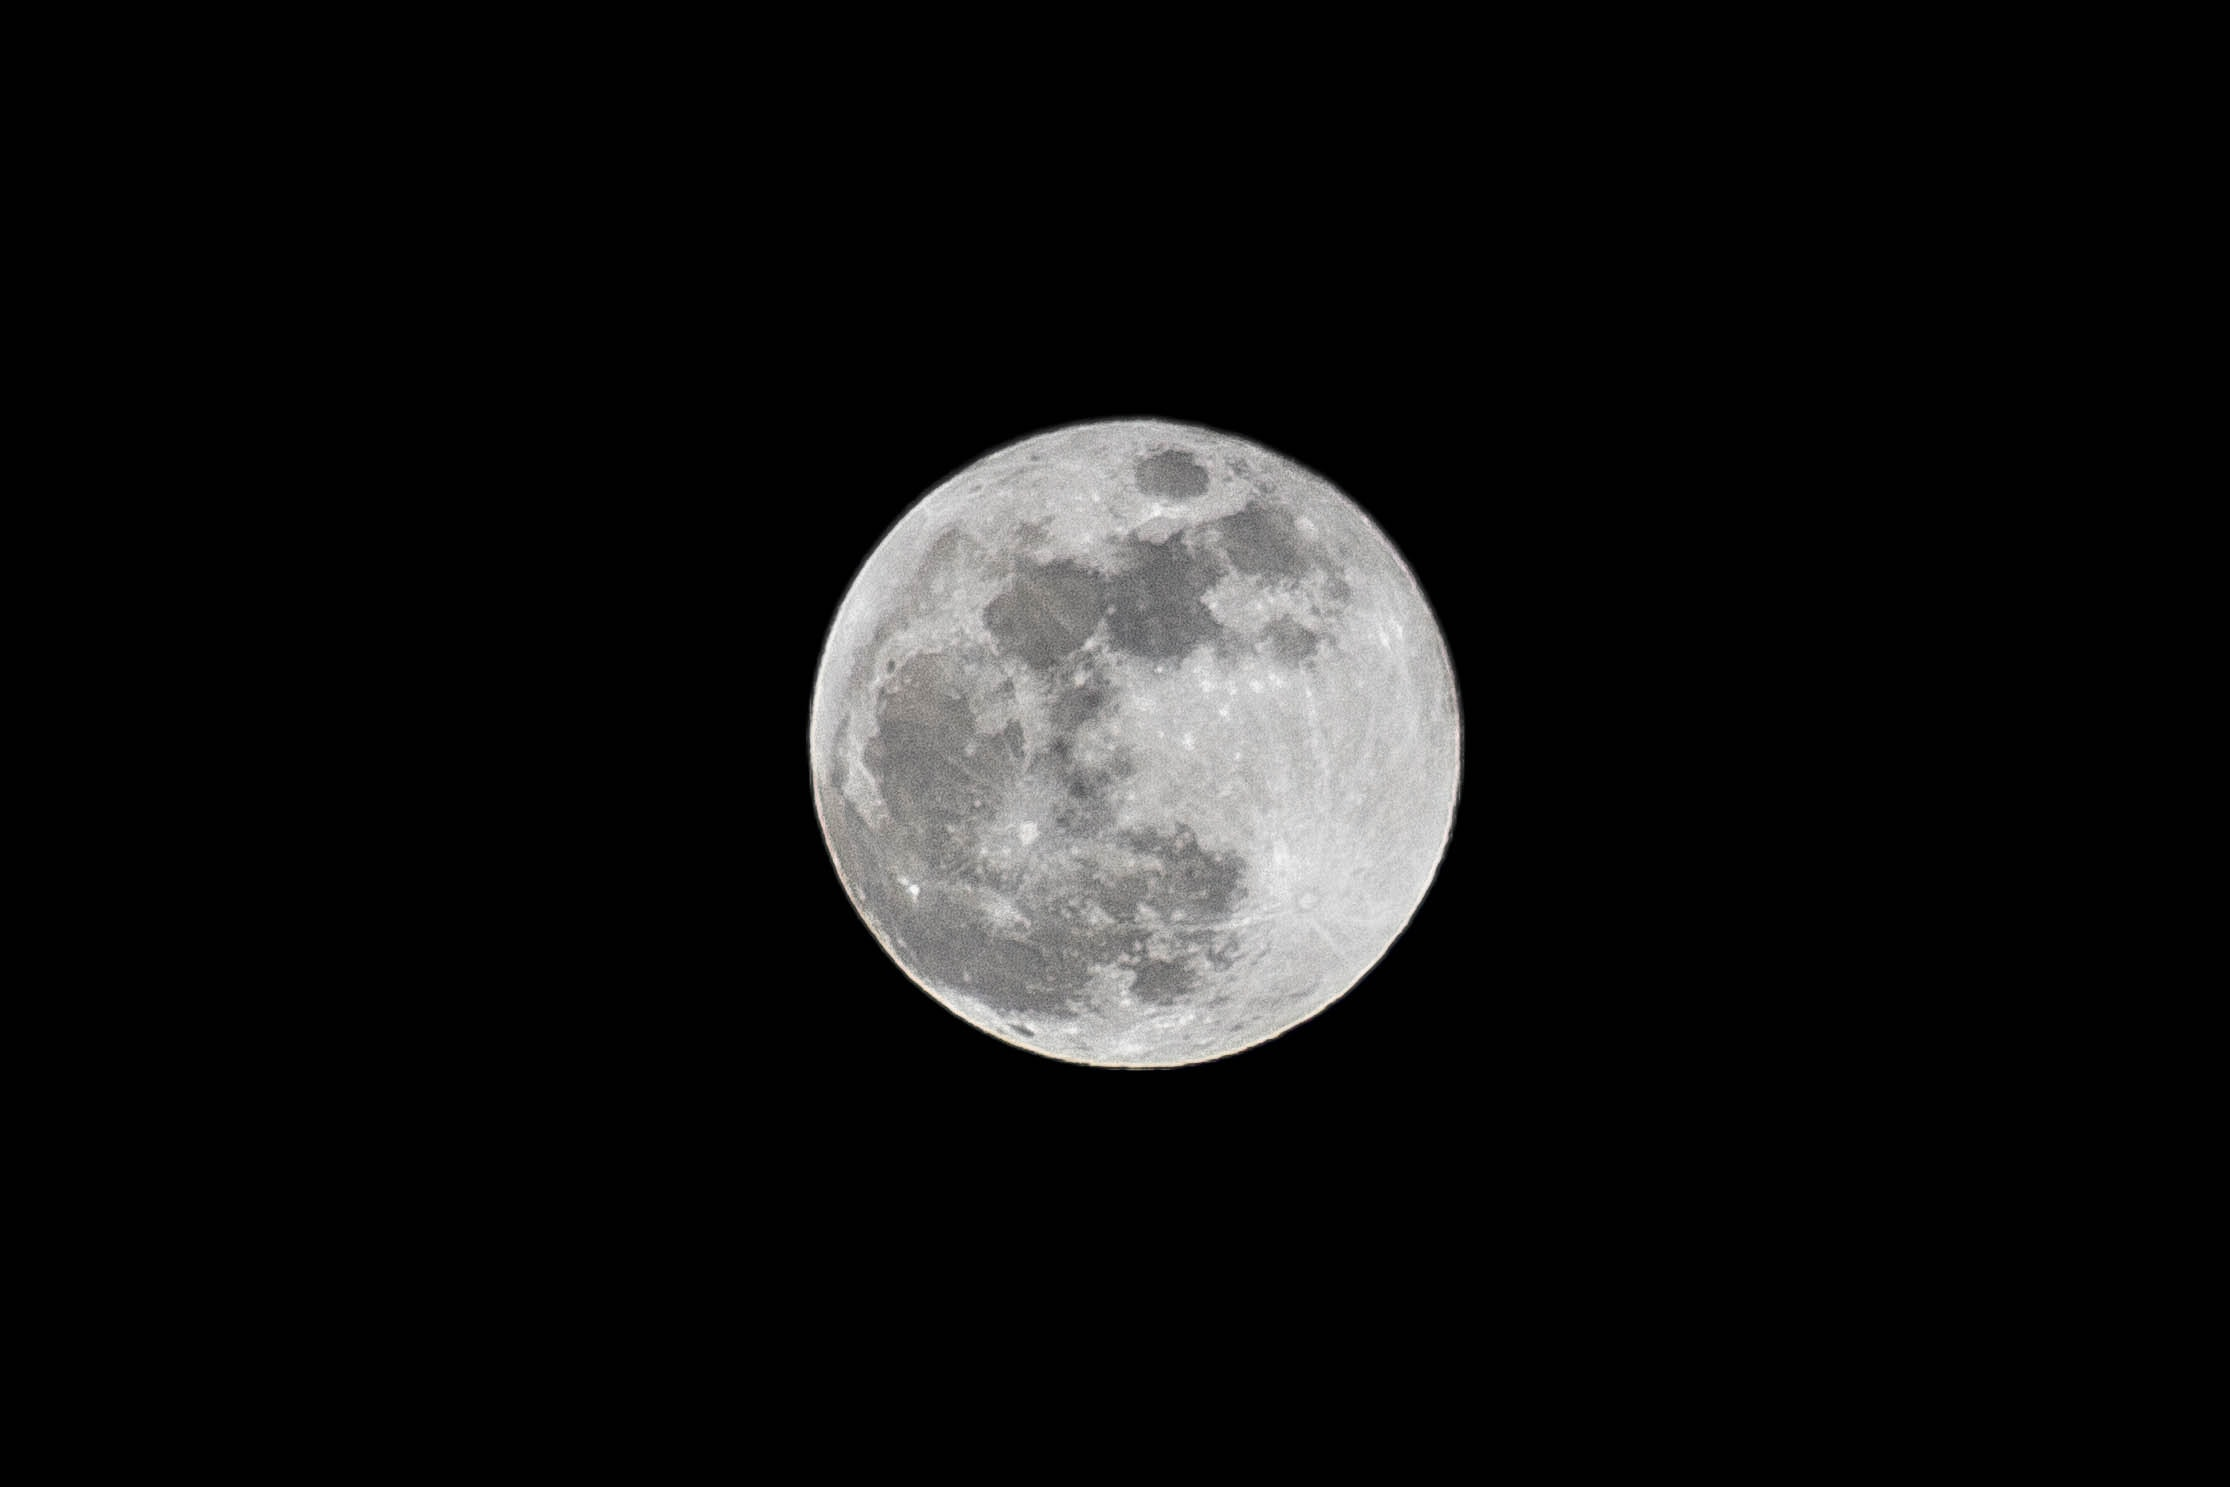 photograph of full moon